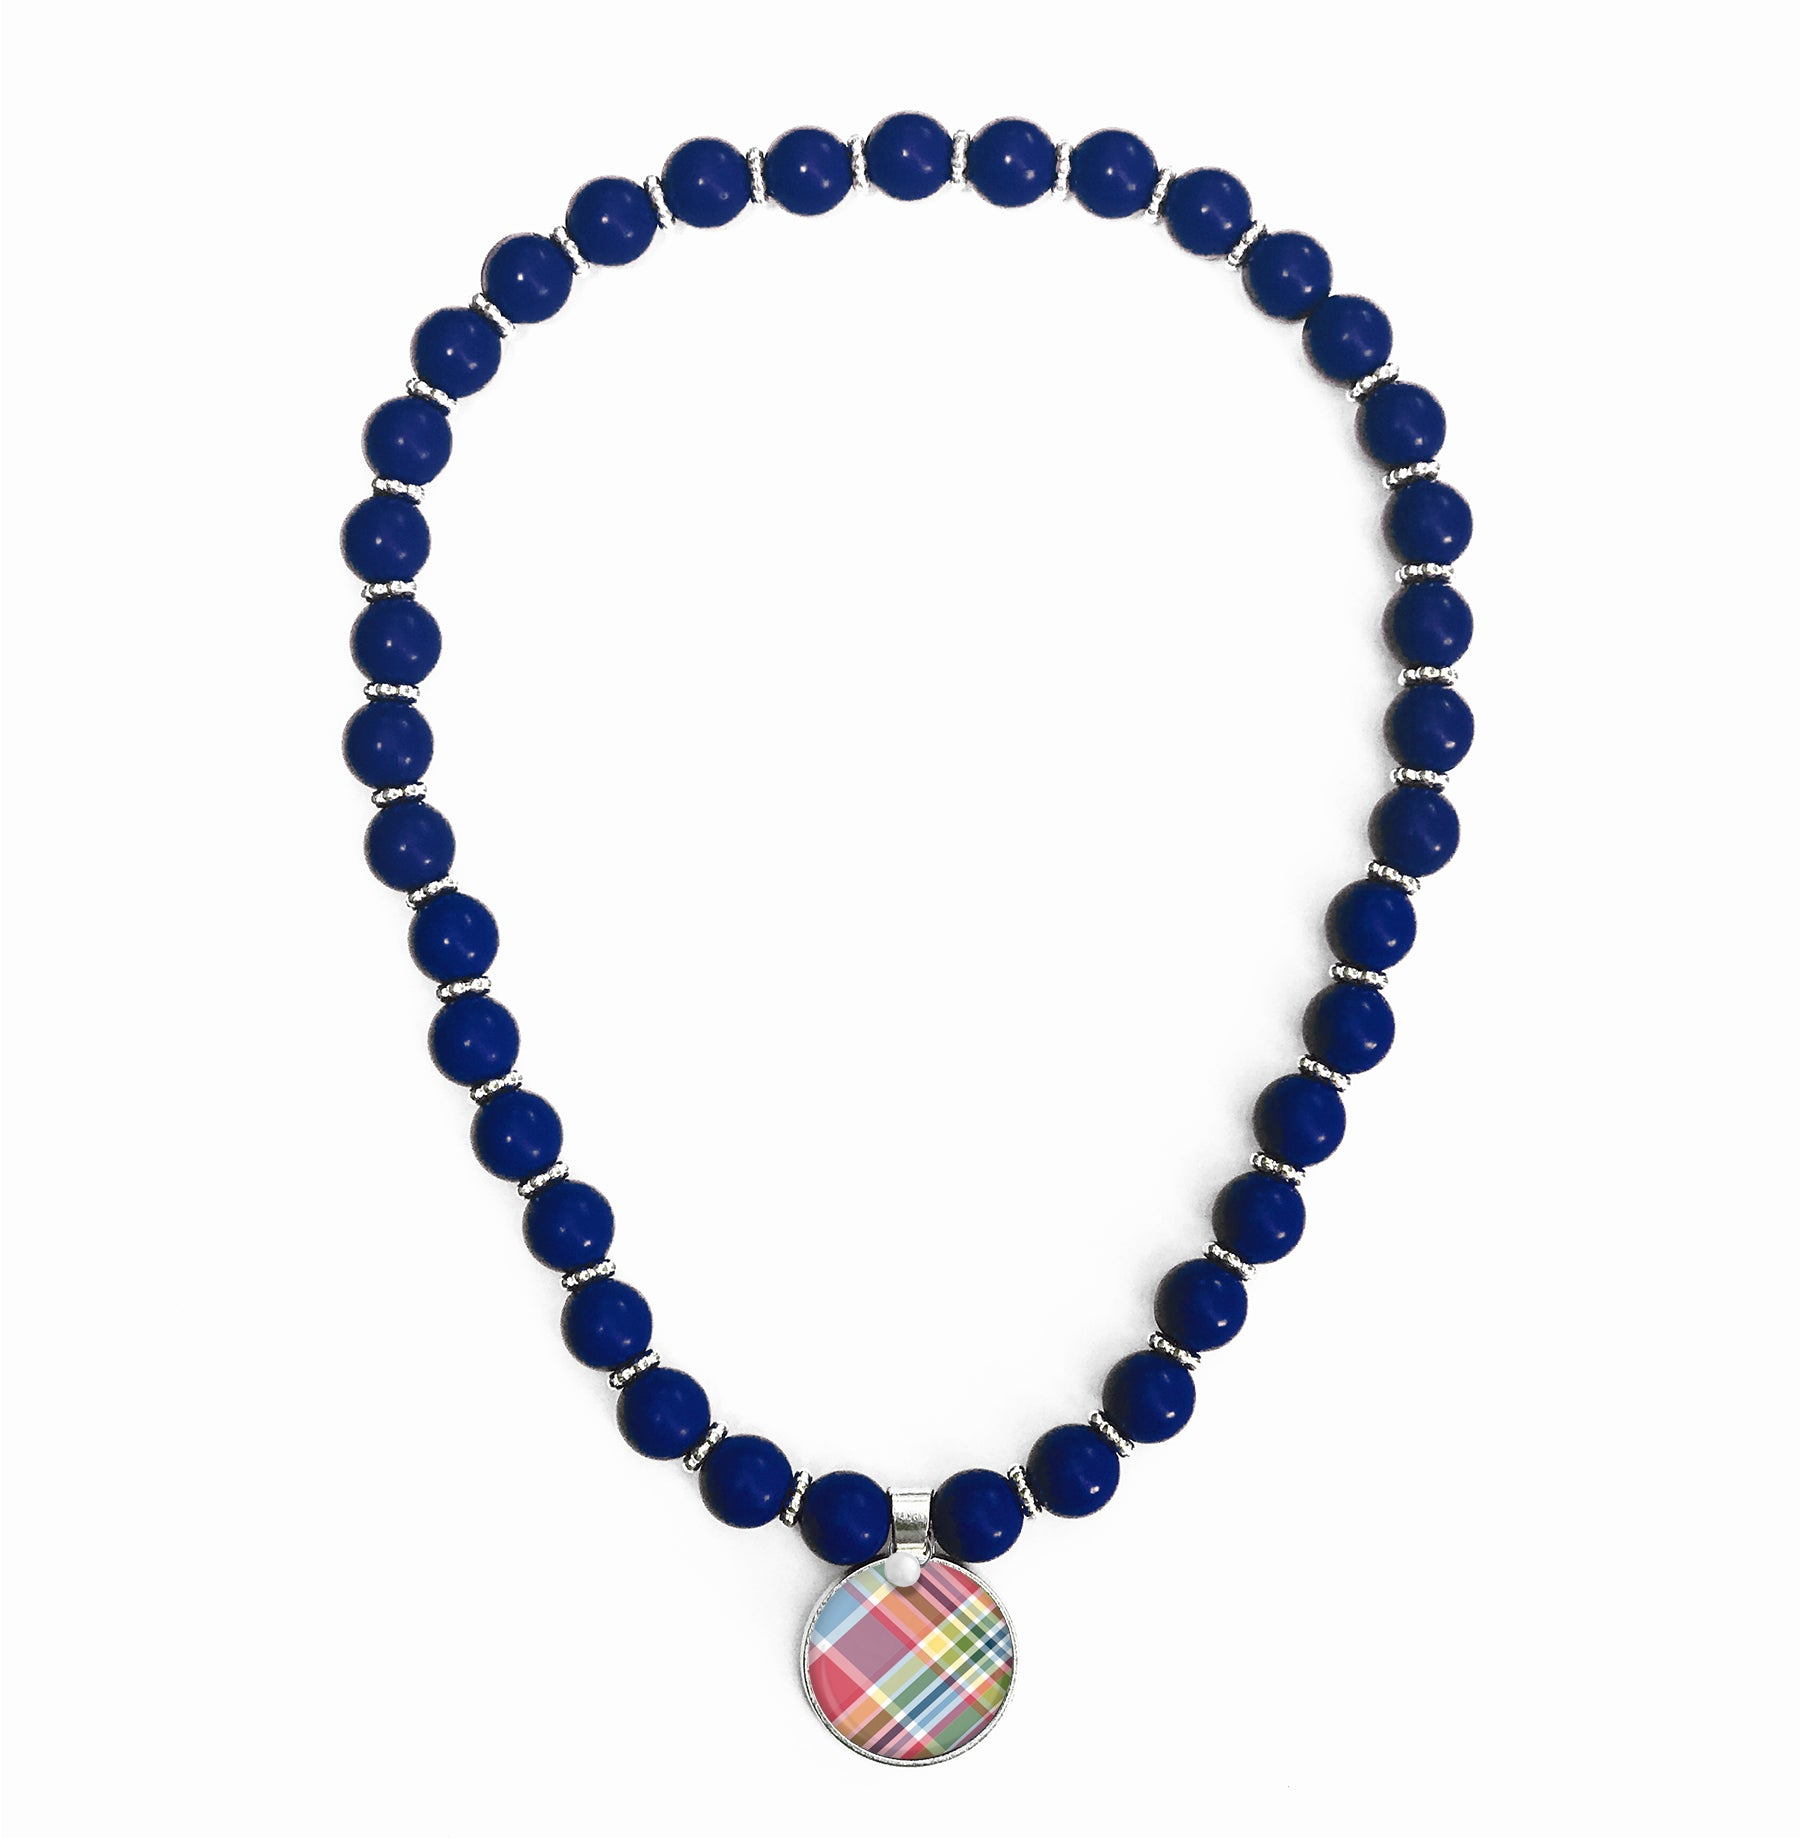 Madras Plaid Beaded Necklace